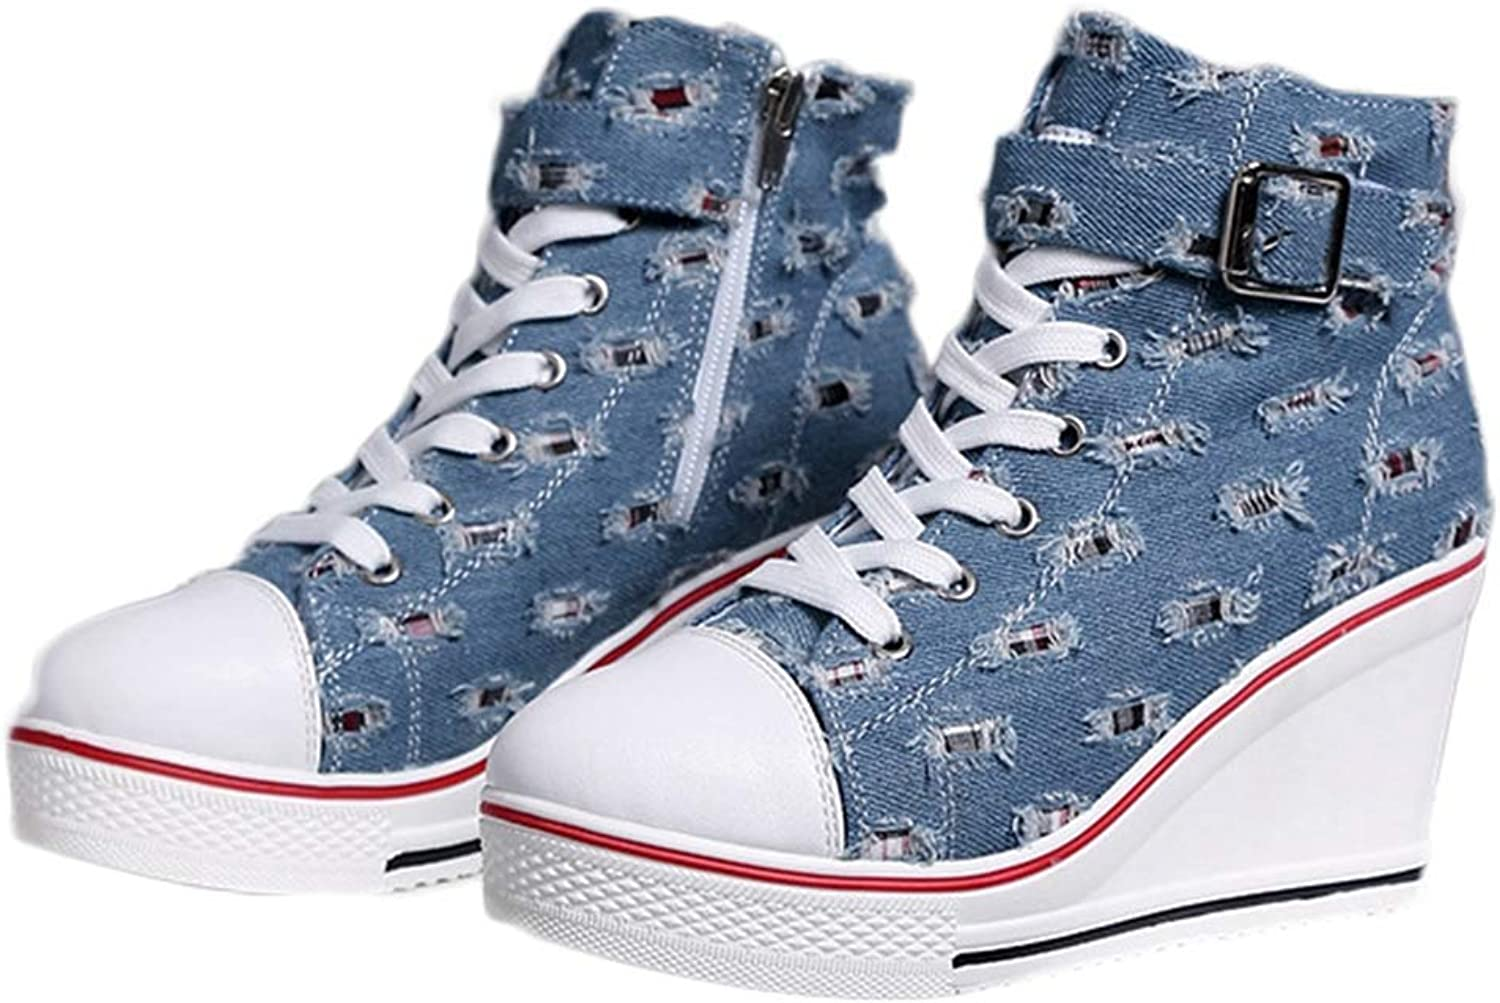 Fullwill Women's Fashion Wedge Sneakers Denim Ankle Bootie High Top Platform Lace up Casual Canvas shoes